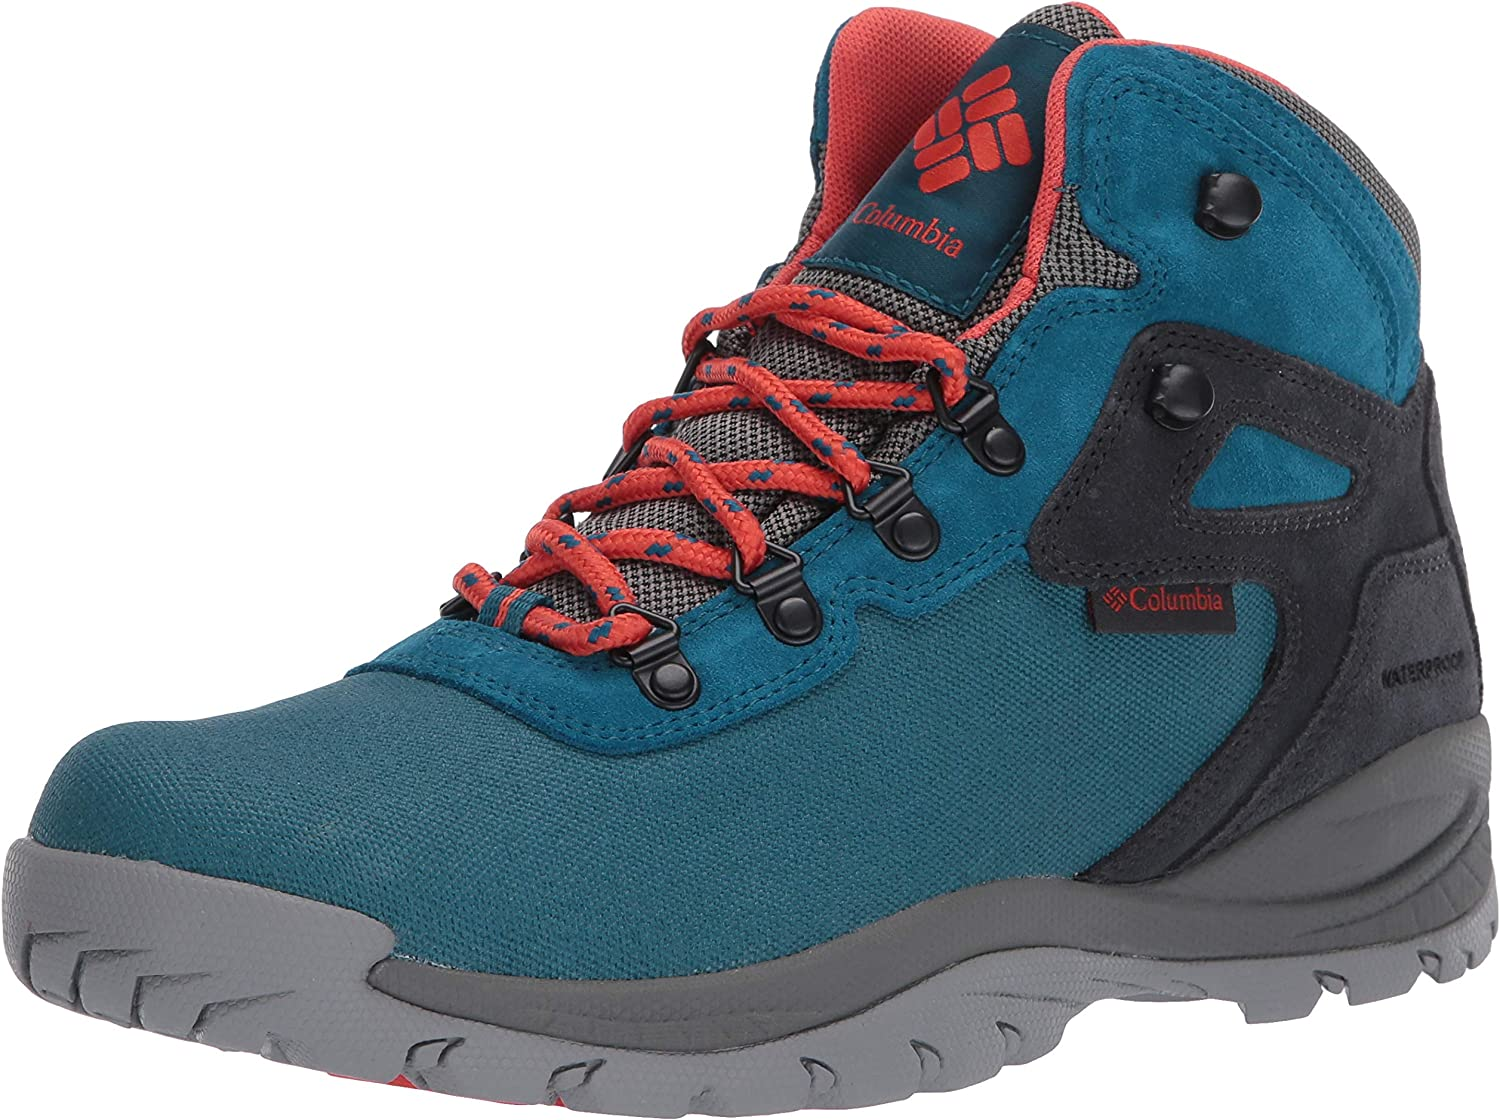 Columbia Women's Newton Ridge Lightweight Waterproof Hiking Boot